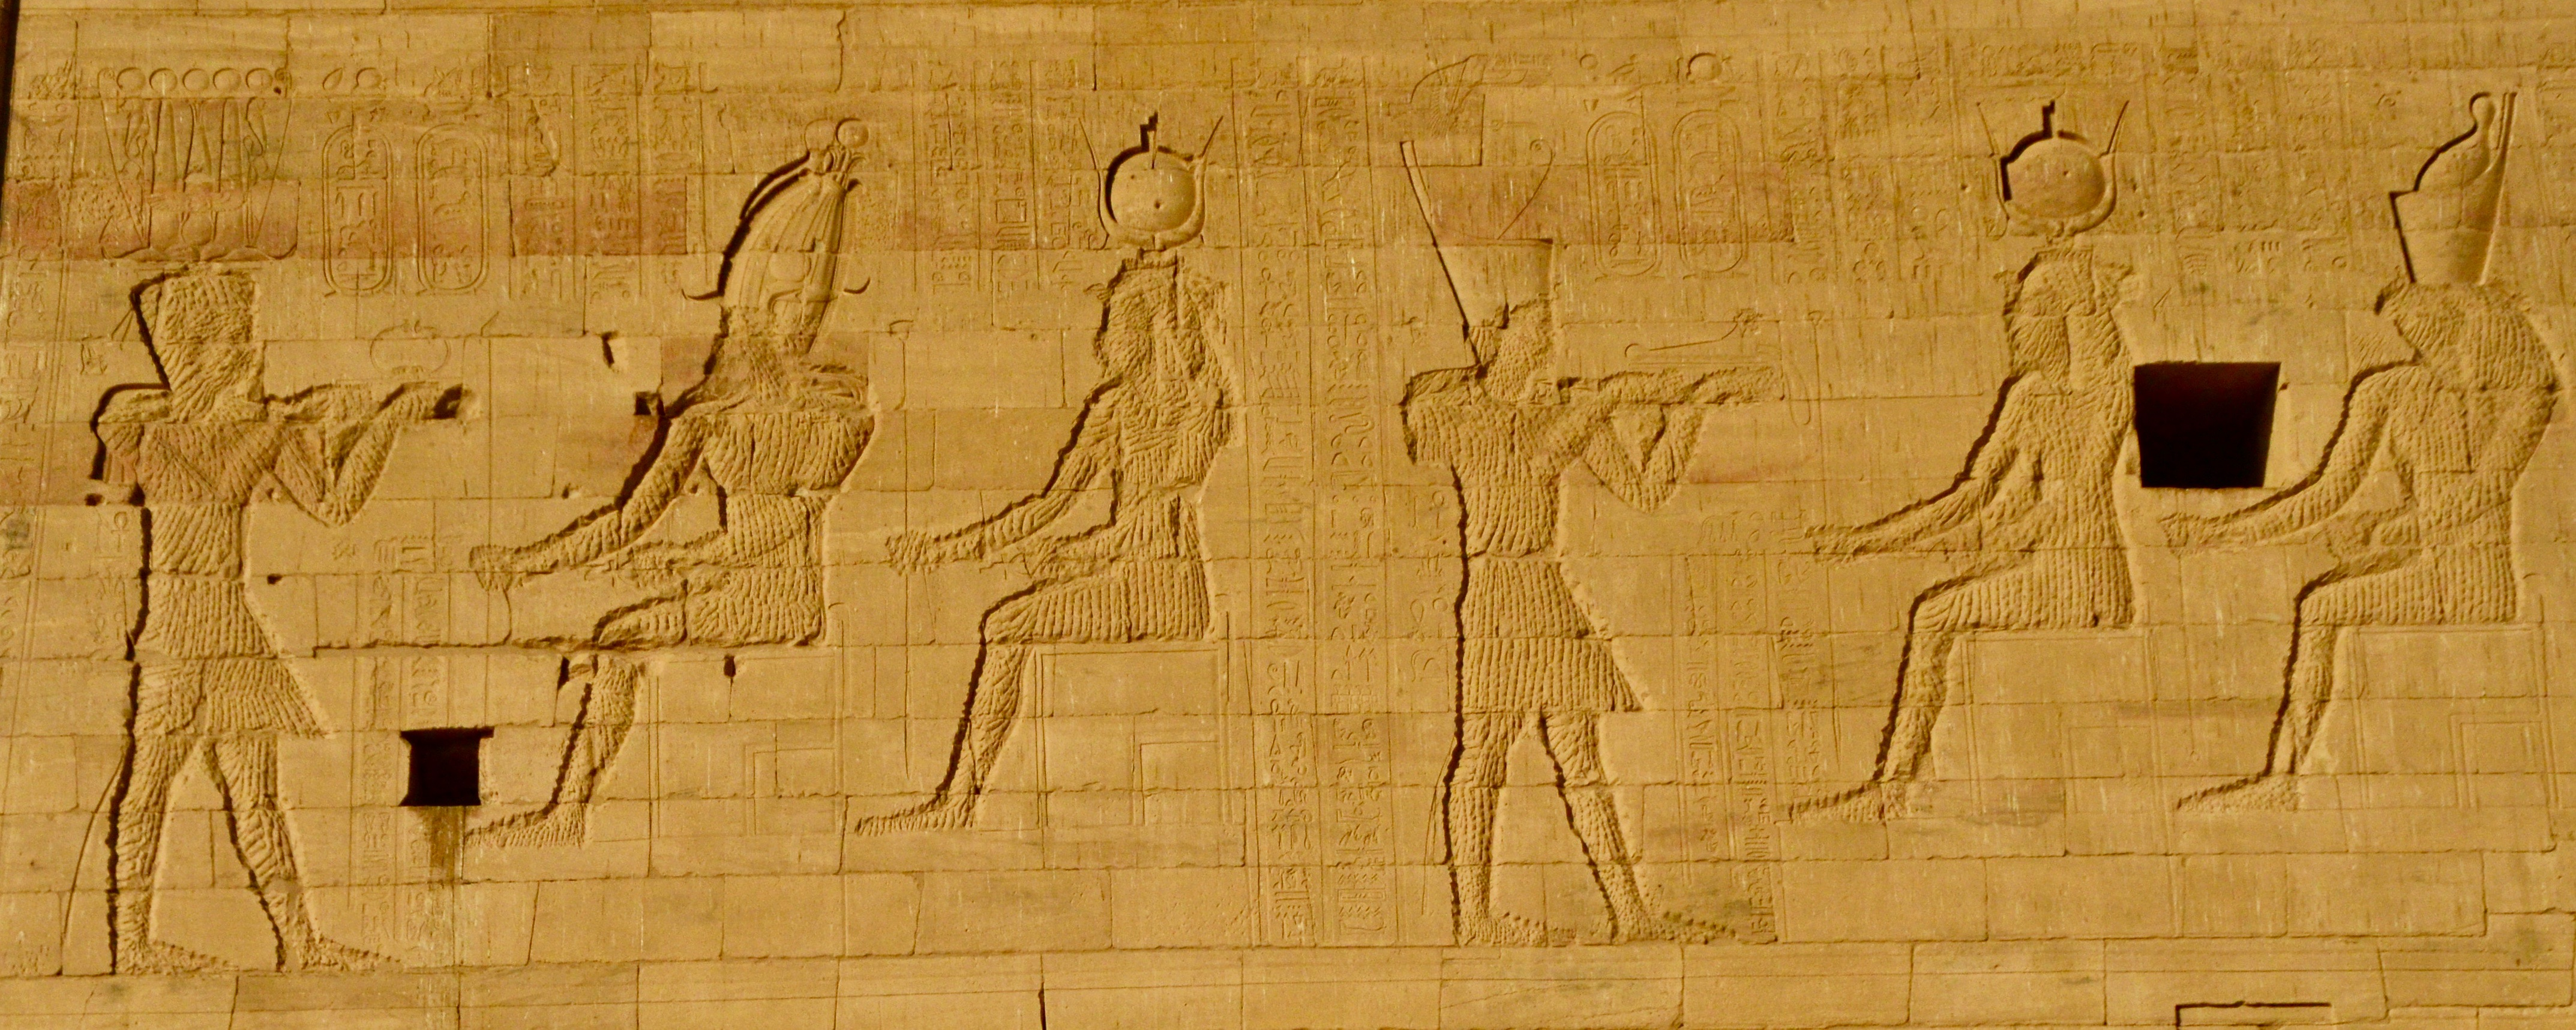 Vandalized Gods, Philae Temples